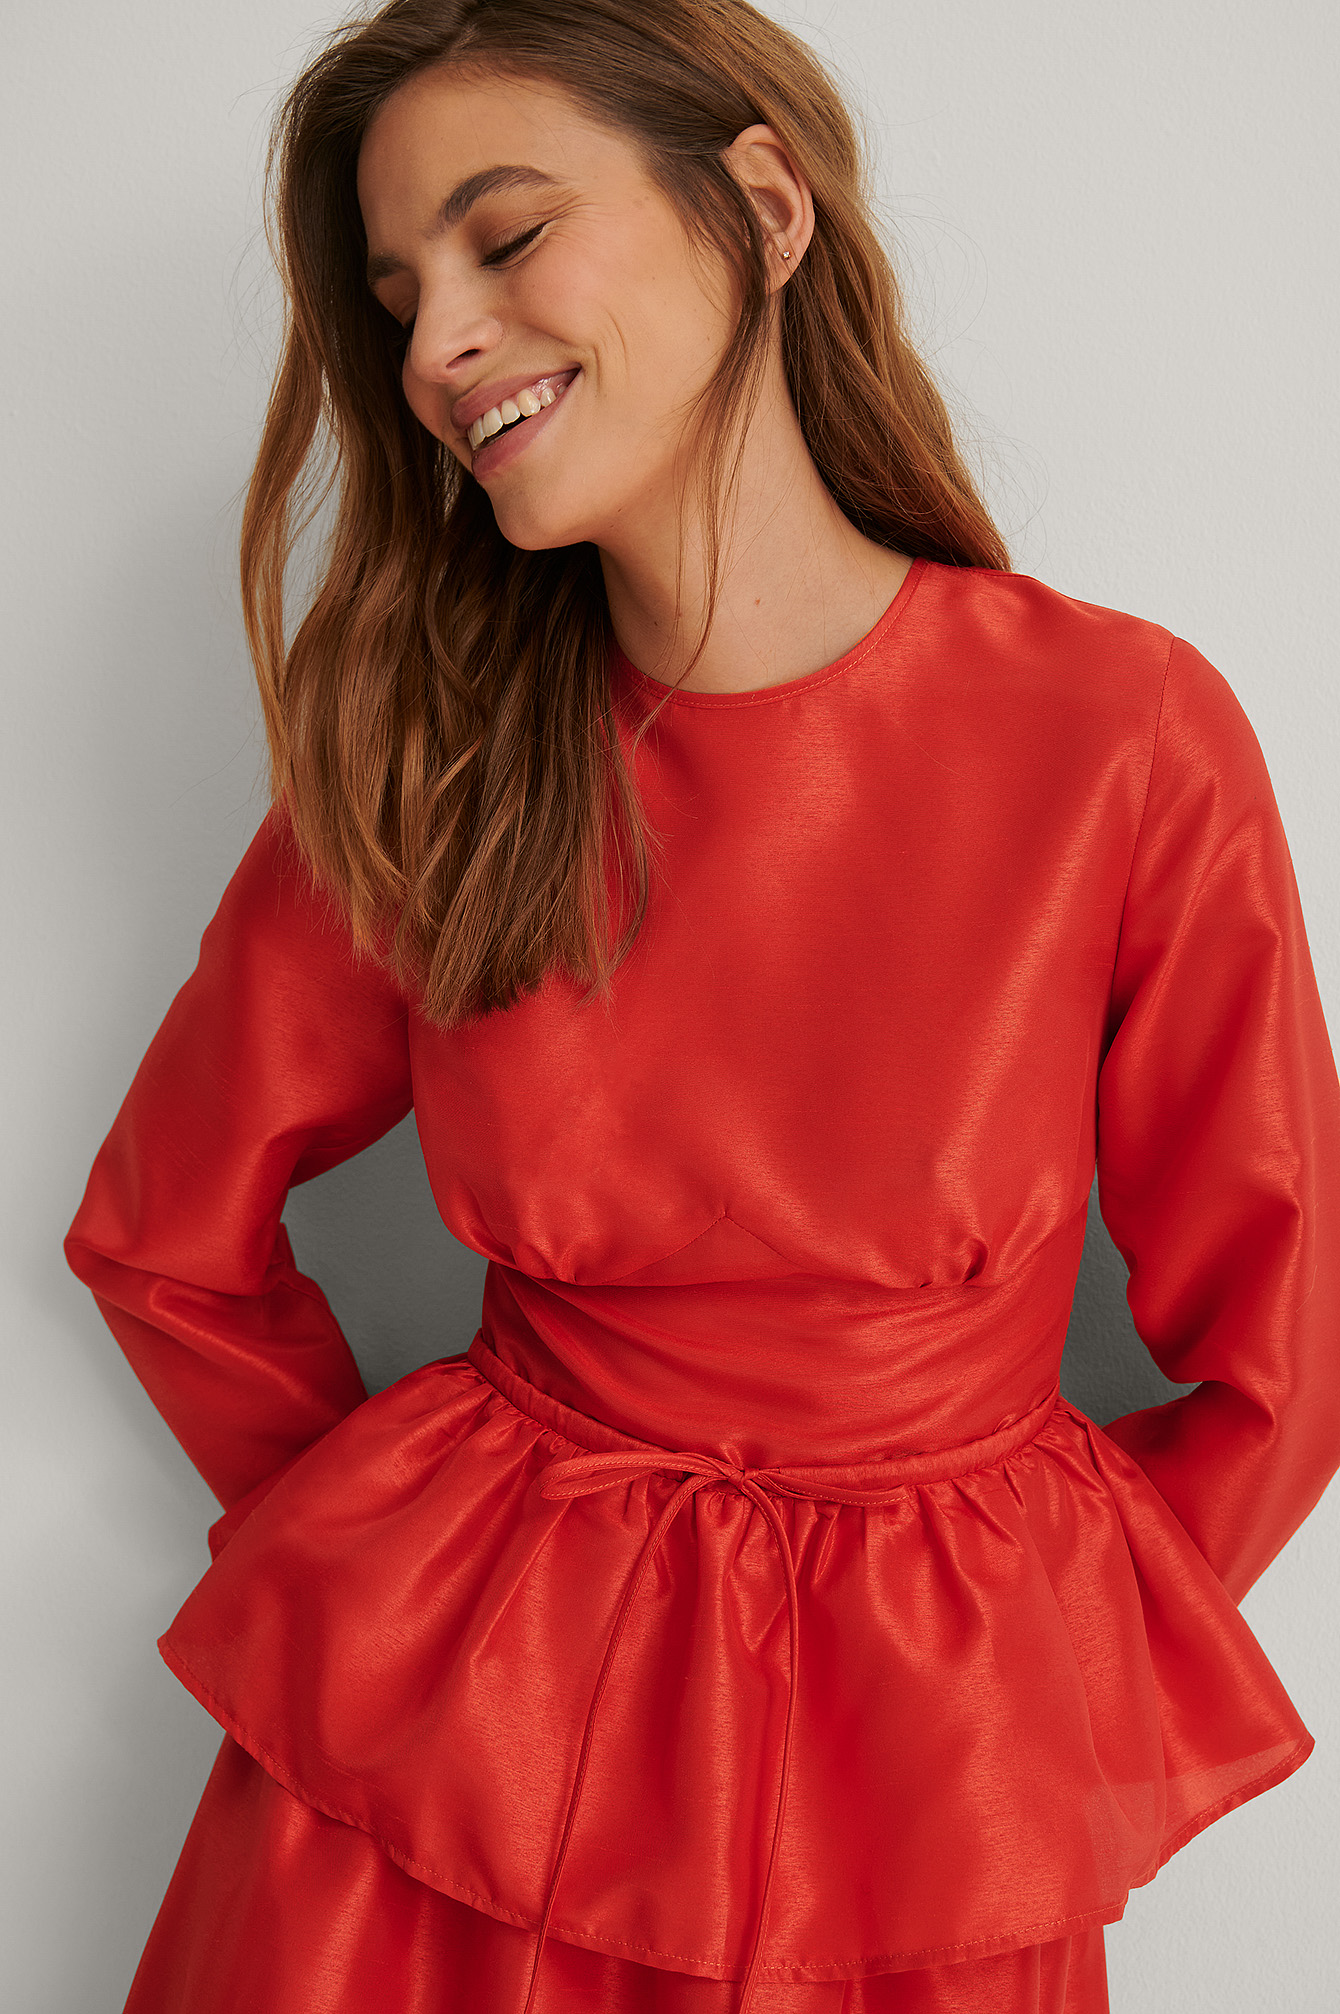 Bright Red Peplum Blouse